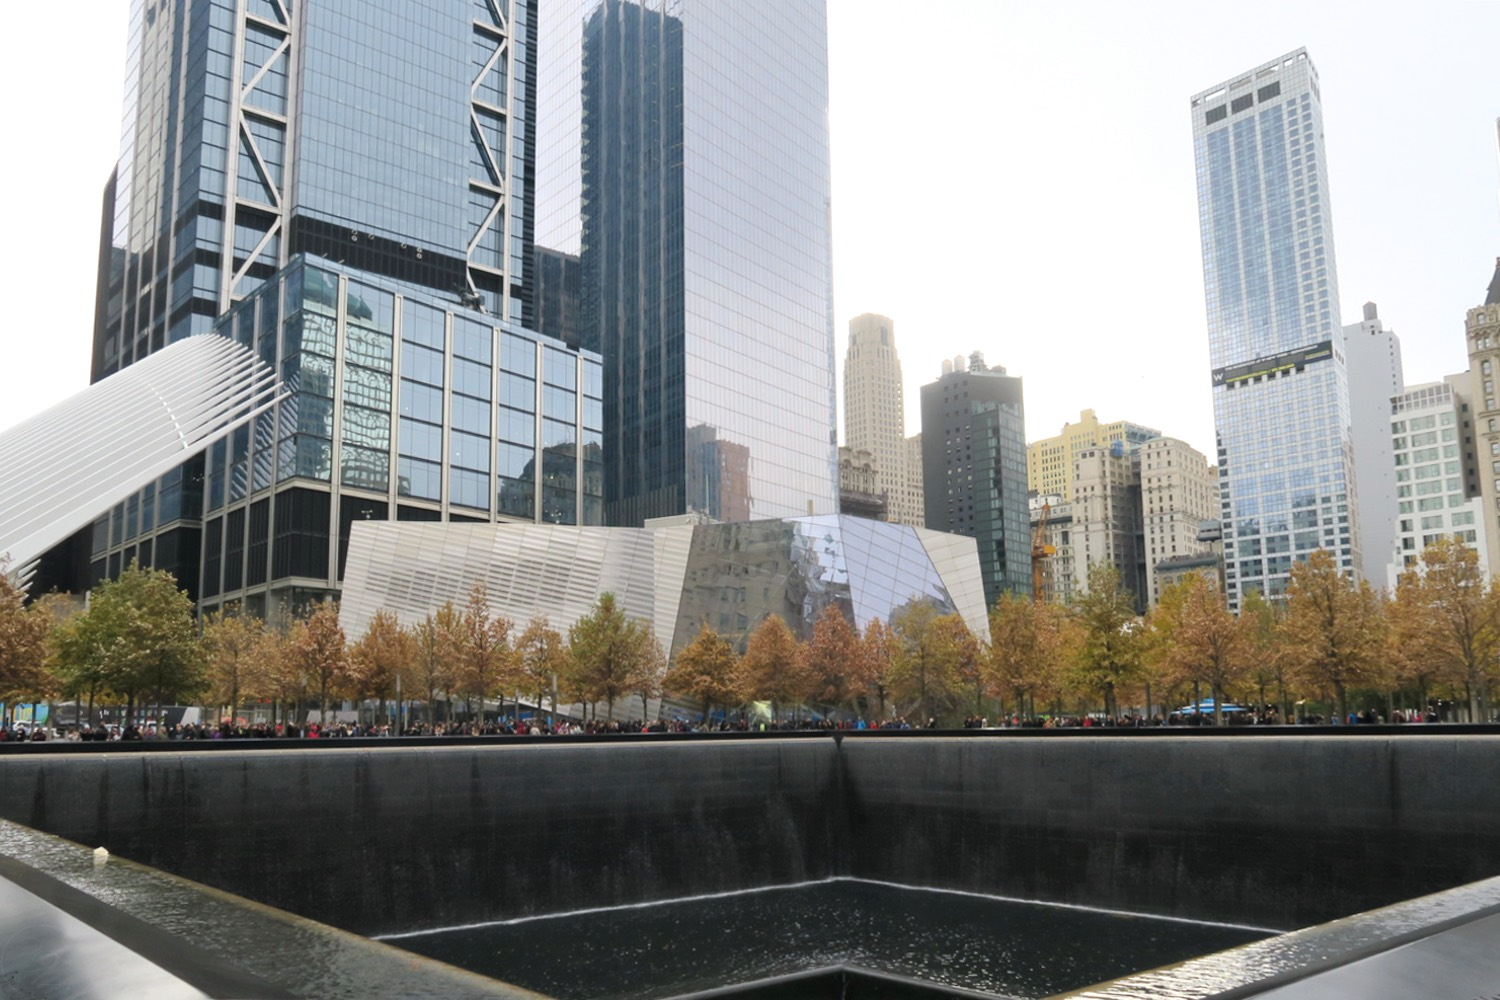 famous-landmarks-tv-shows-movies-nyc-character-32-c32-new-york-manhattan-travel-wtc-memorial-pool-world-trade-center